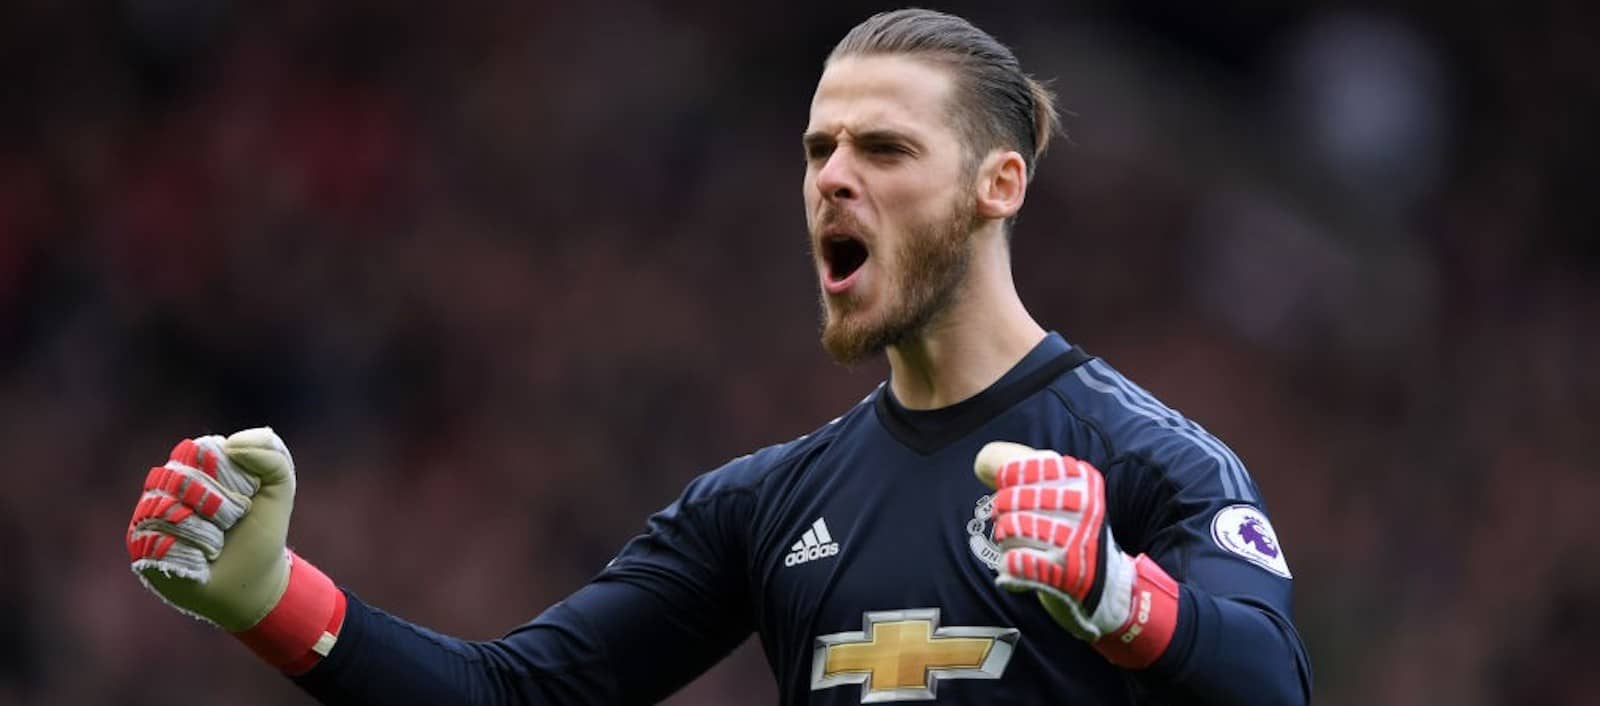 The reason why David de Gea chose to stay at Manchester United – report